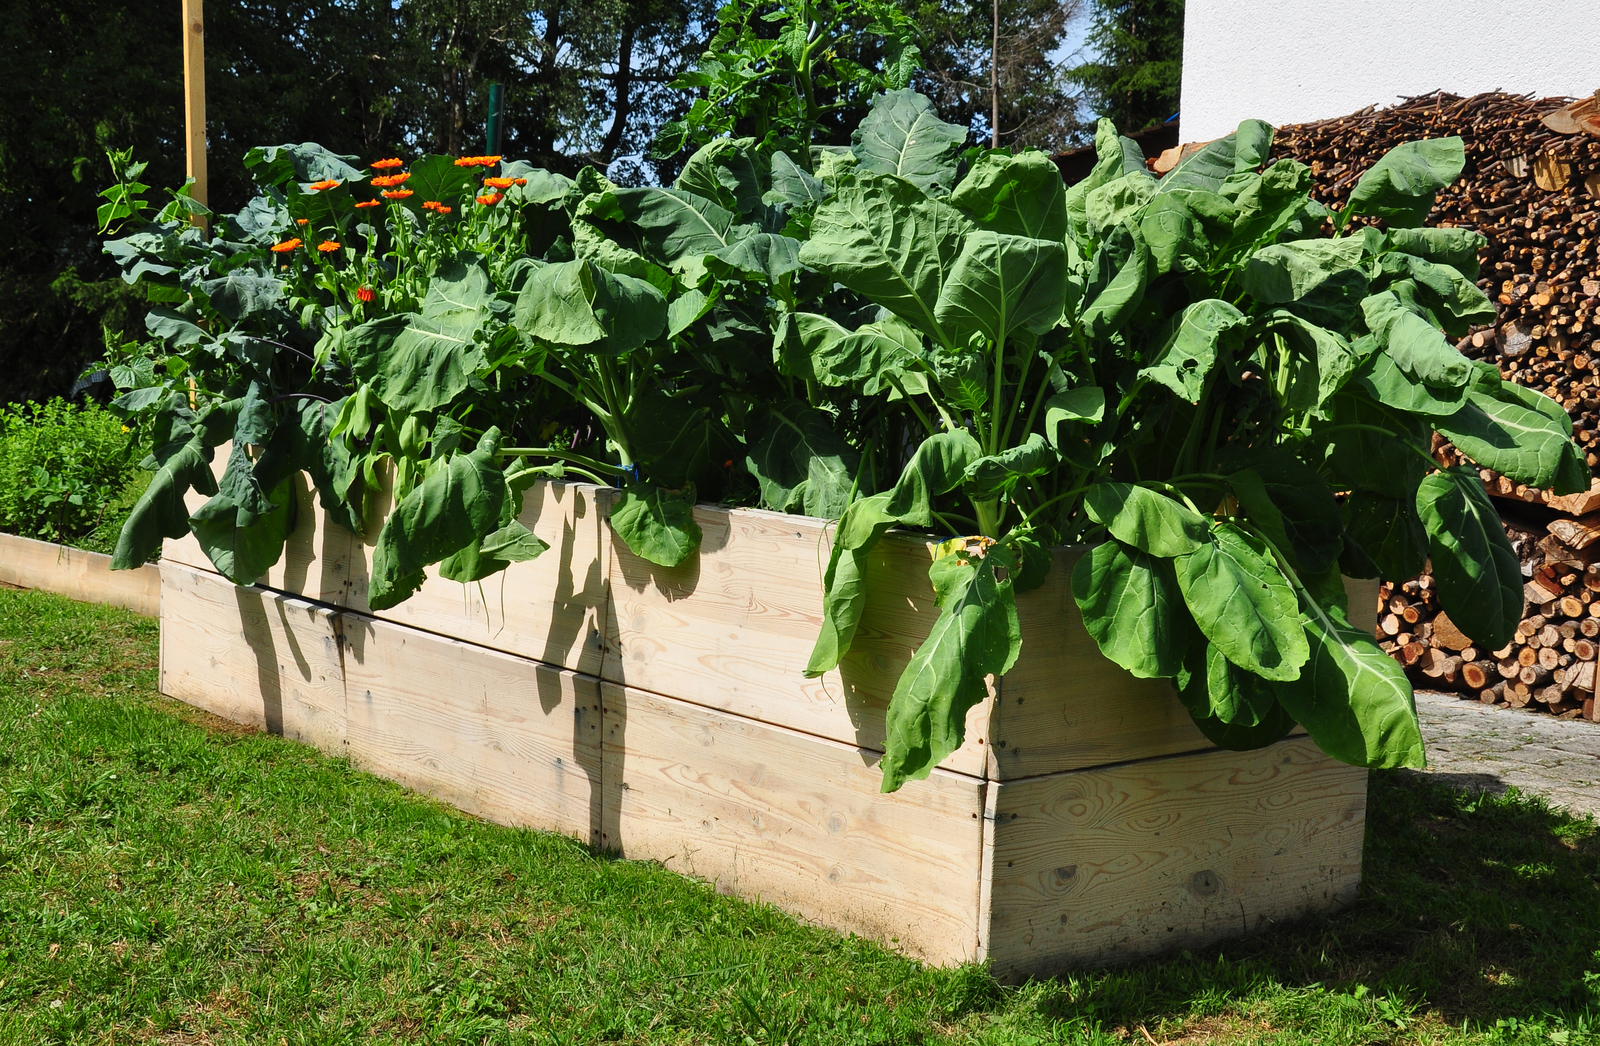 A Step-by-Step Guide to Removing Grass from Under A Raised Garden Bed